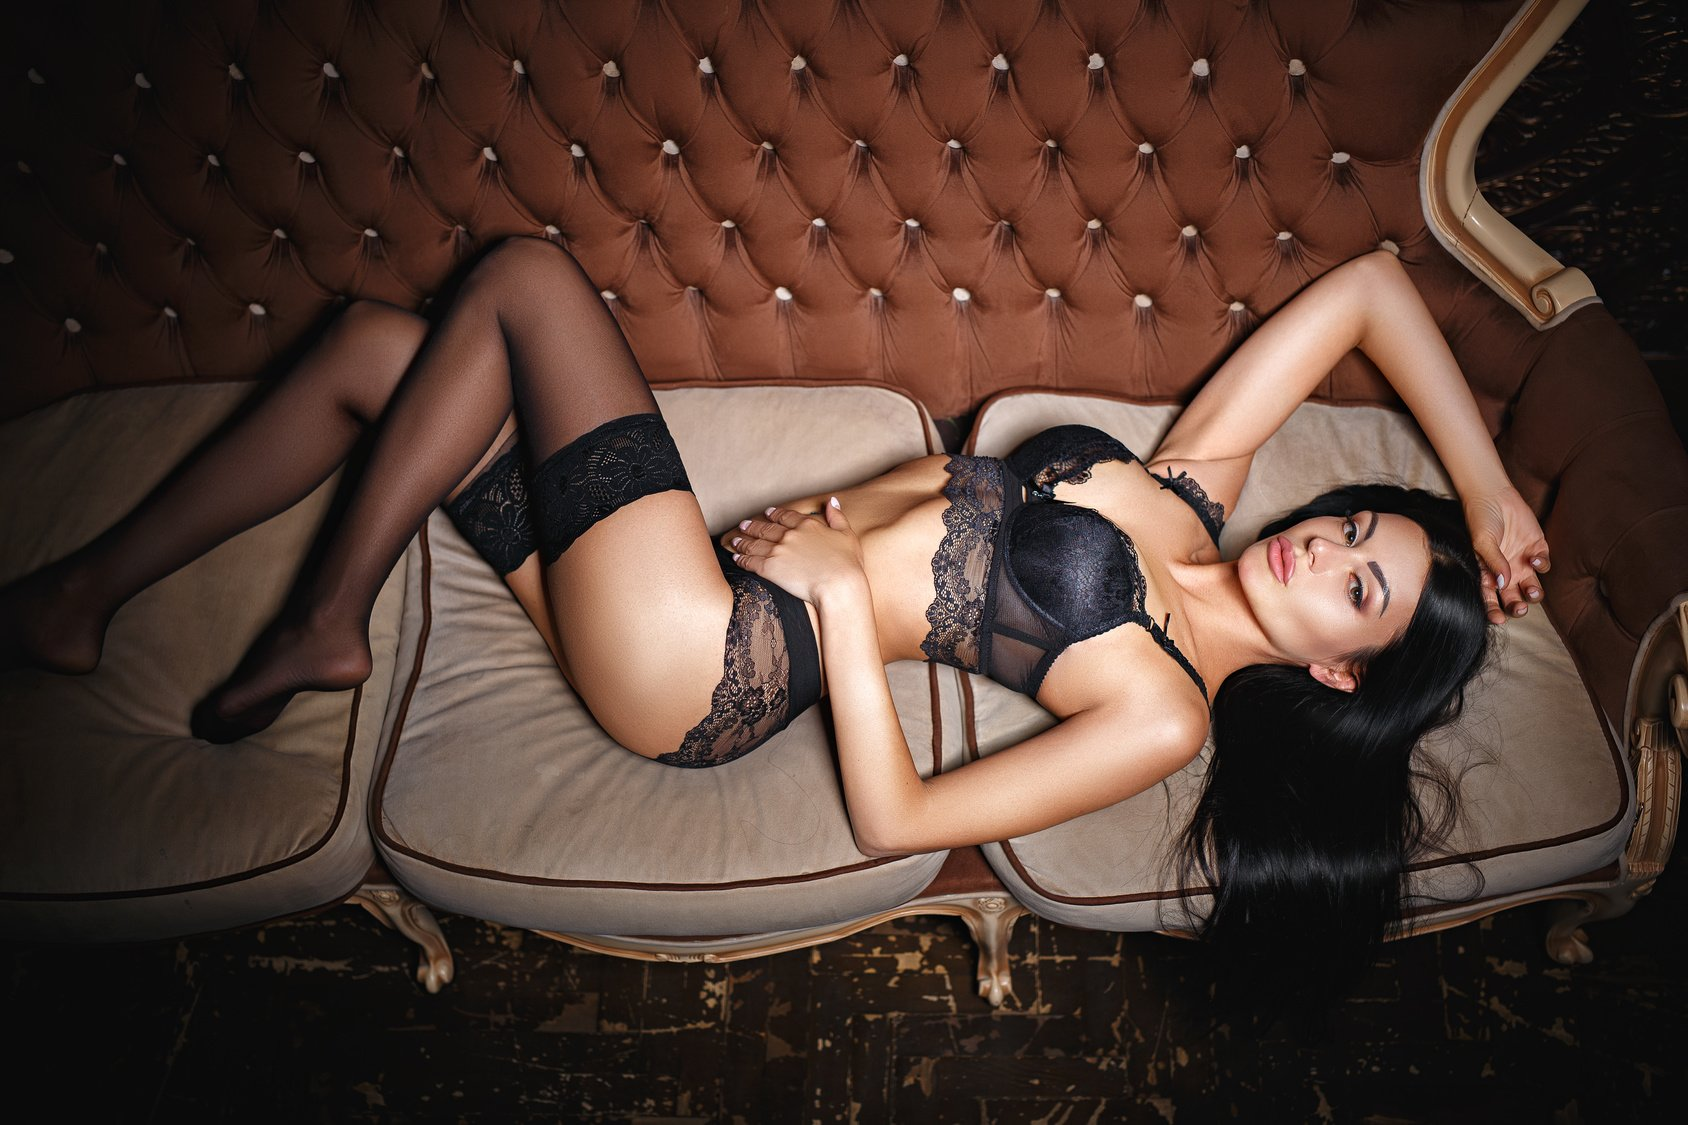 The best strip clubs in Gold Coast